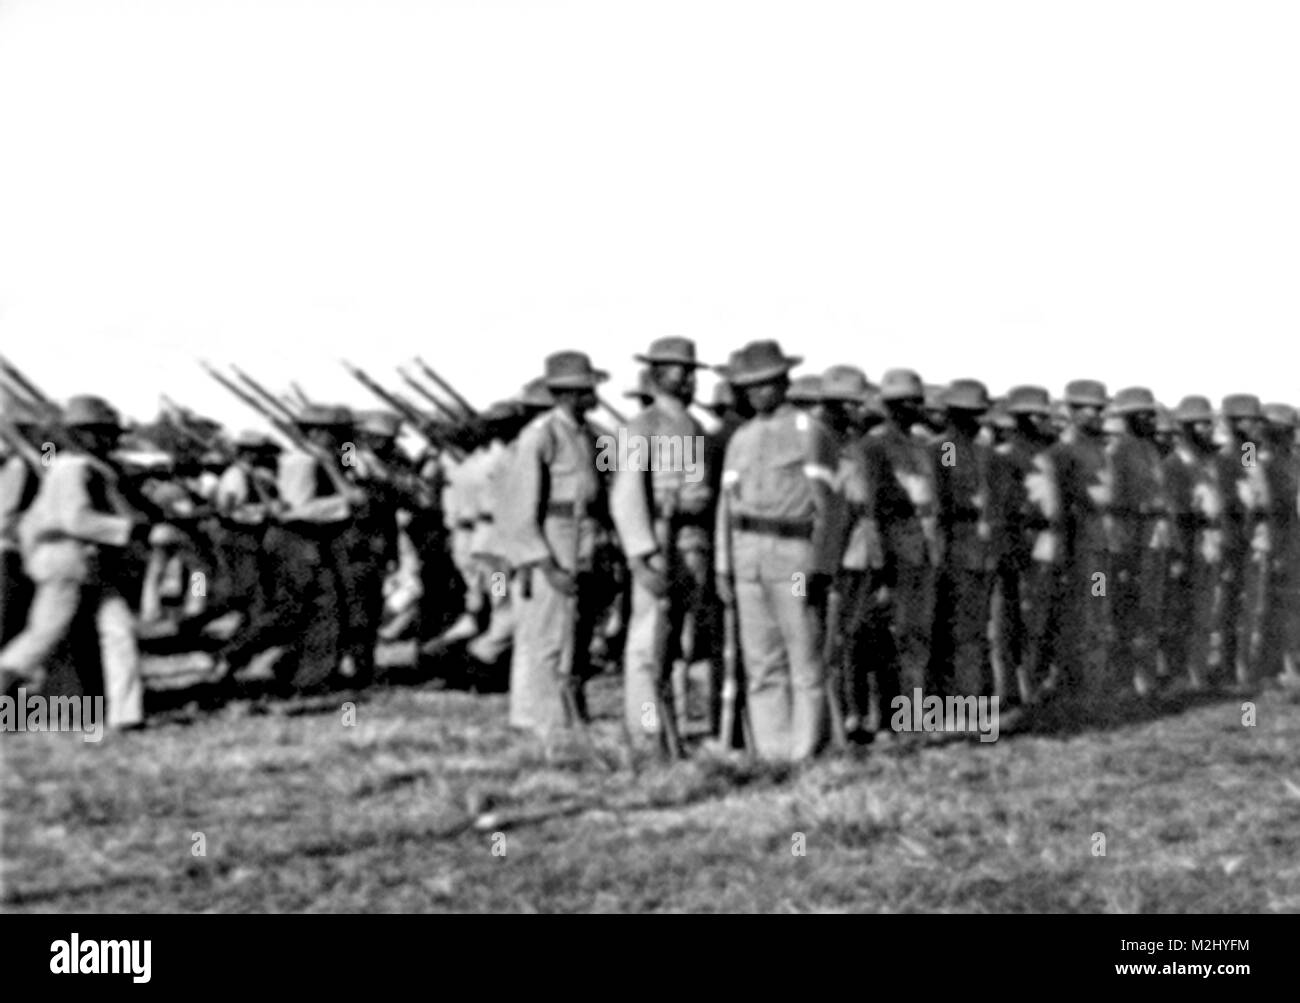 Philippine-American War, Buffalo Soldiers, 1902 - Stock Image